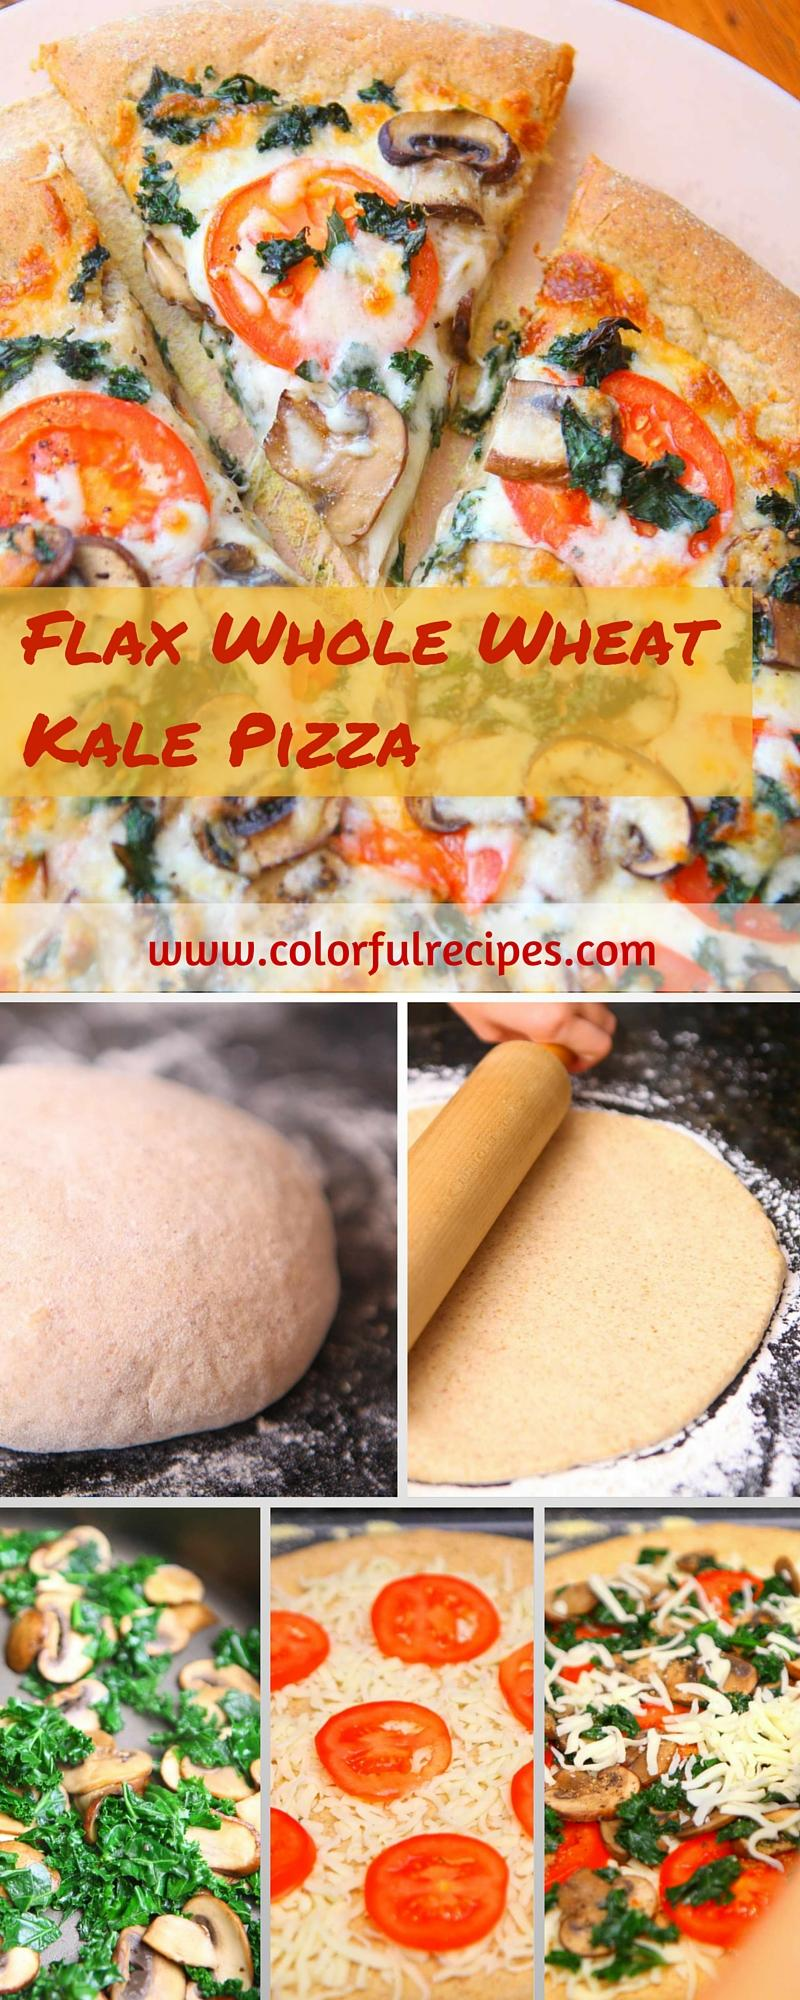 flax whole wheat kale pizza